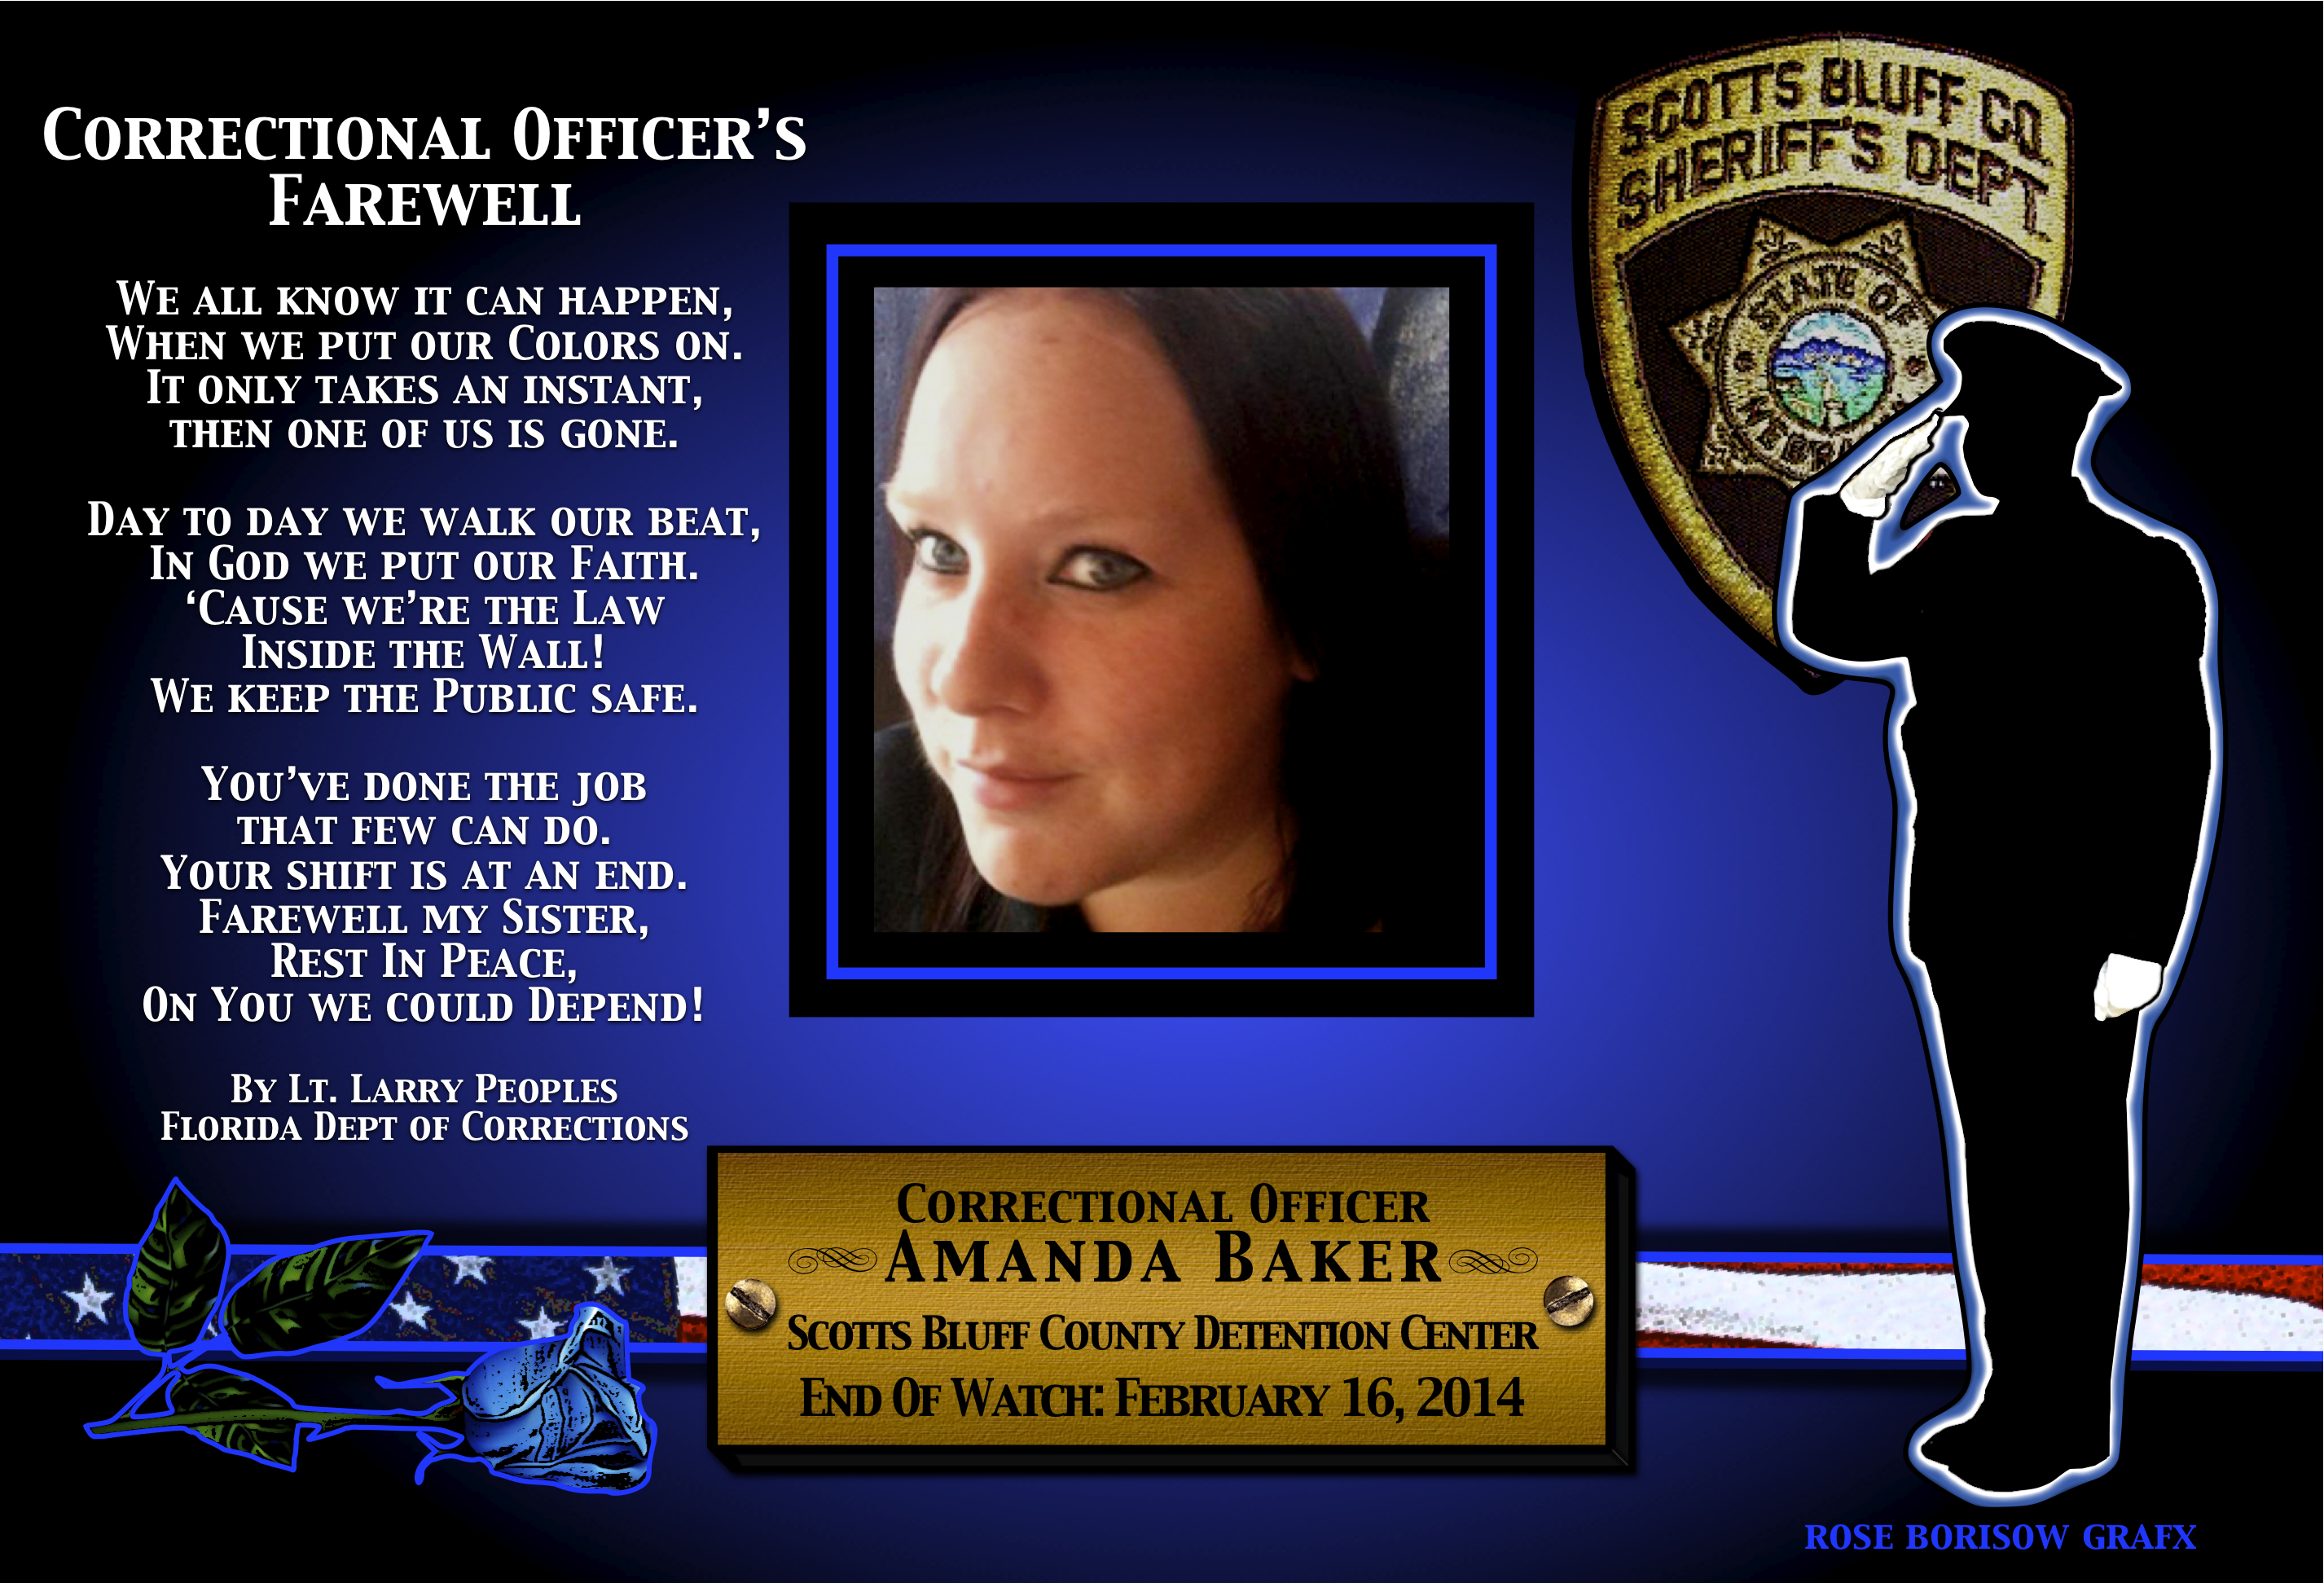 Fallen Officer-Corrections-Baker-Scott's Bluff